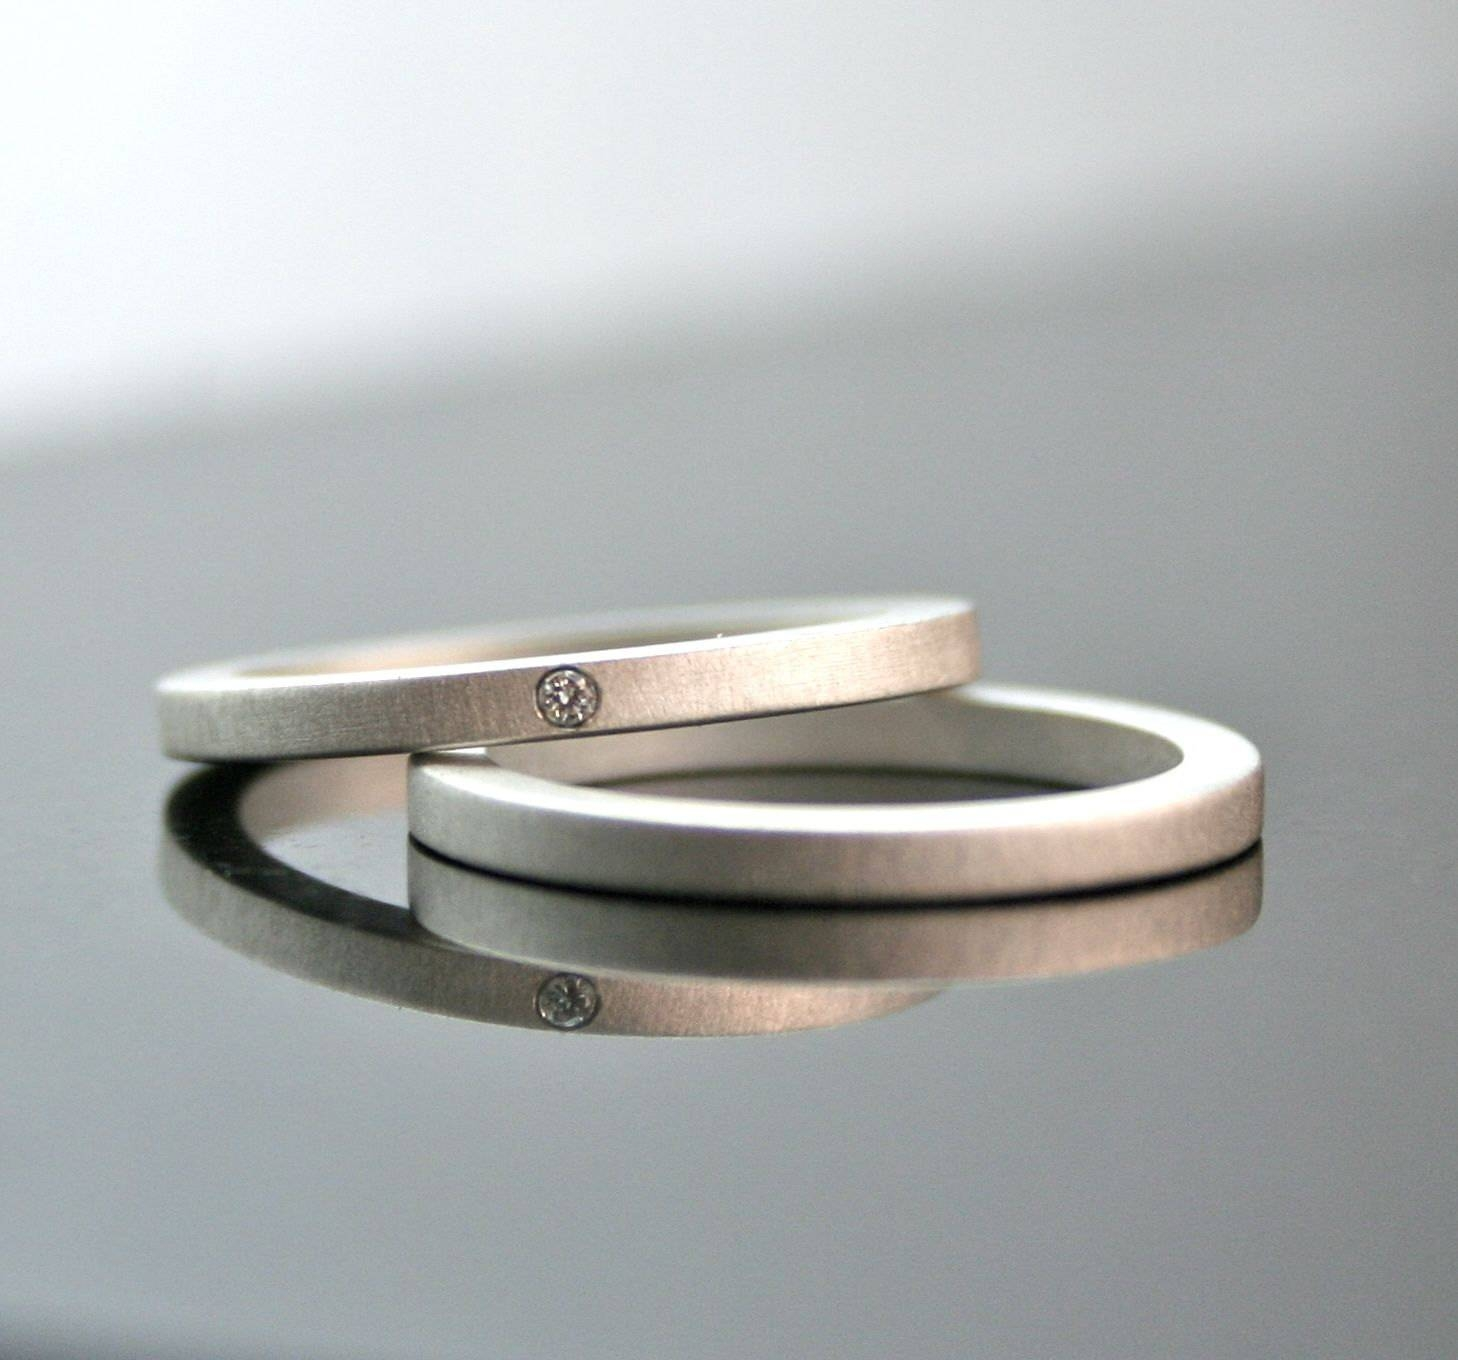 ring stacking jewelry crescent wedding handmade eco friendly fine white diamond gold band everyday bands moon media half simple